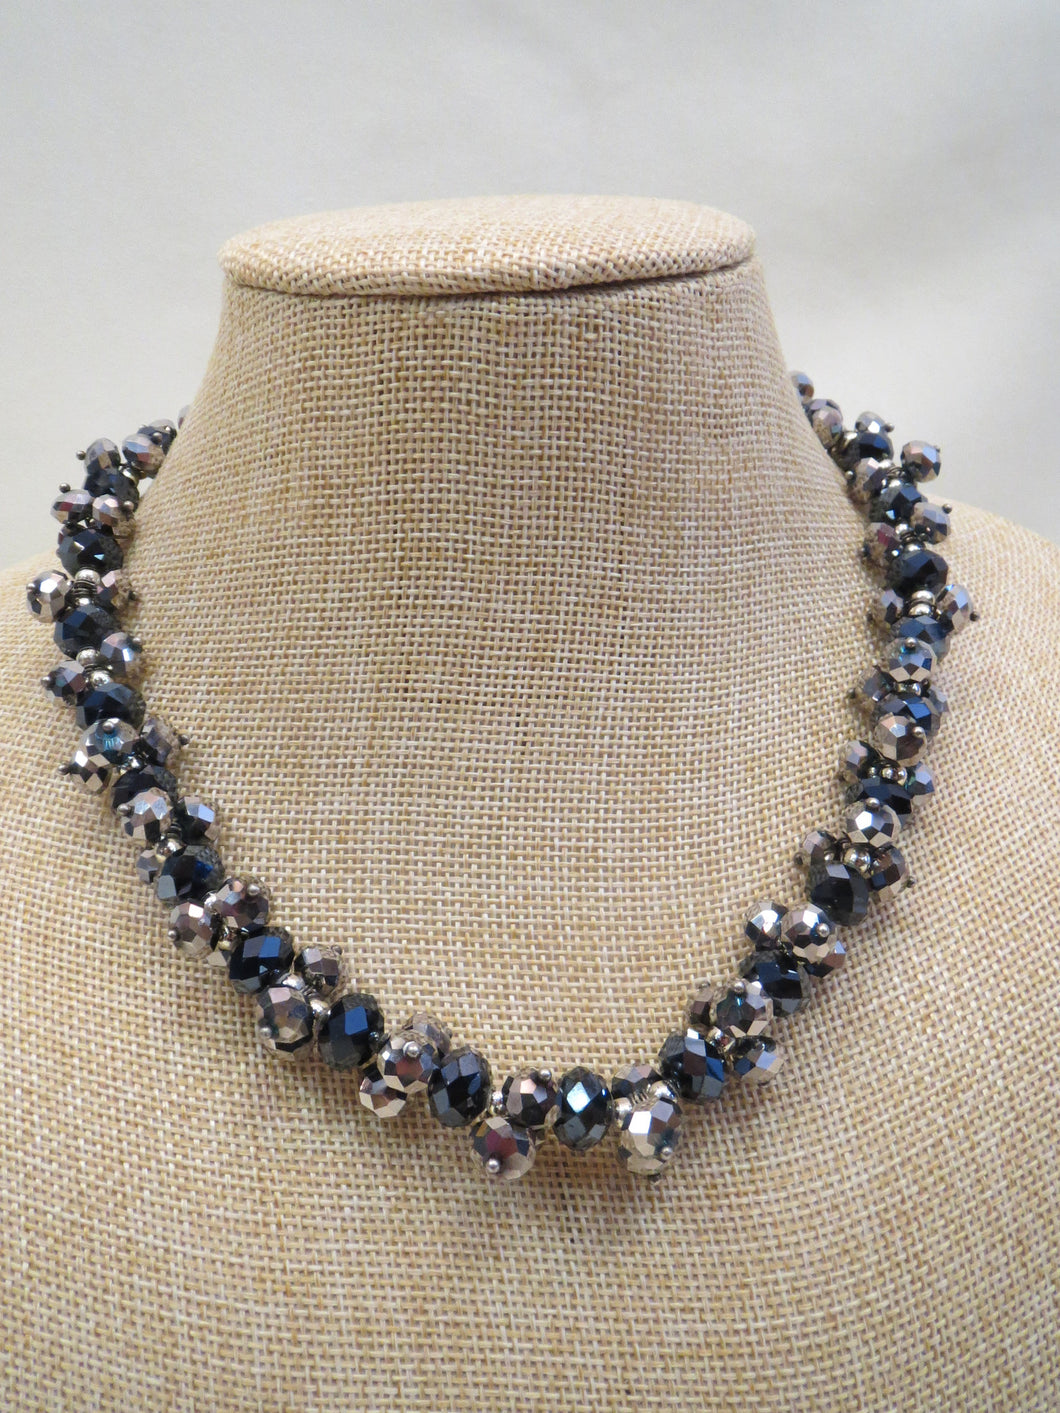 ADO | Chunky Silver & Navy Necklace - All Decd Out